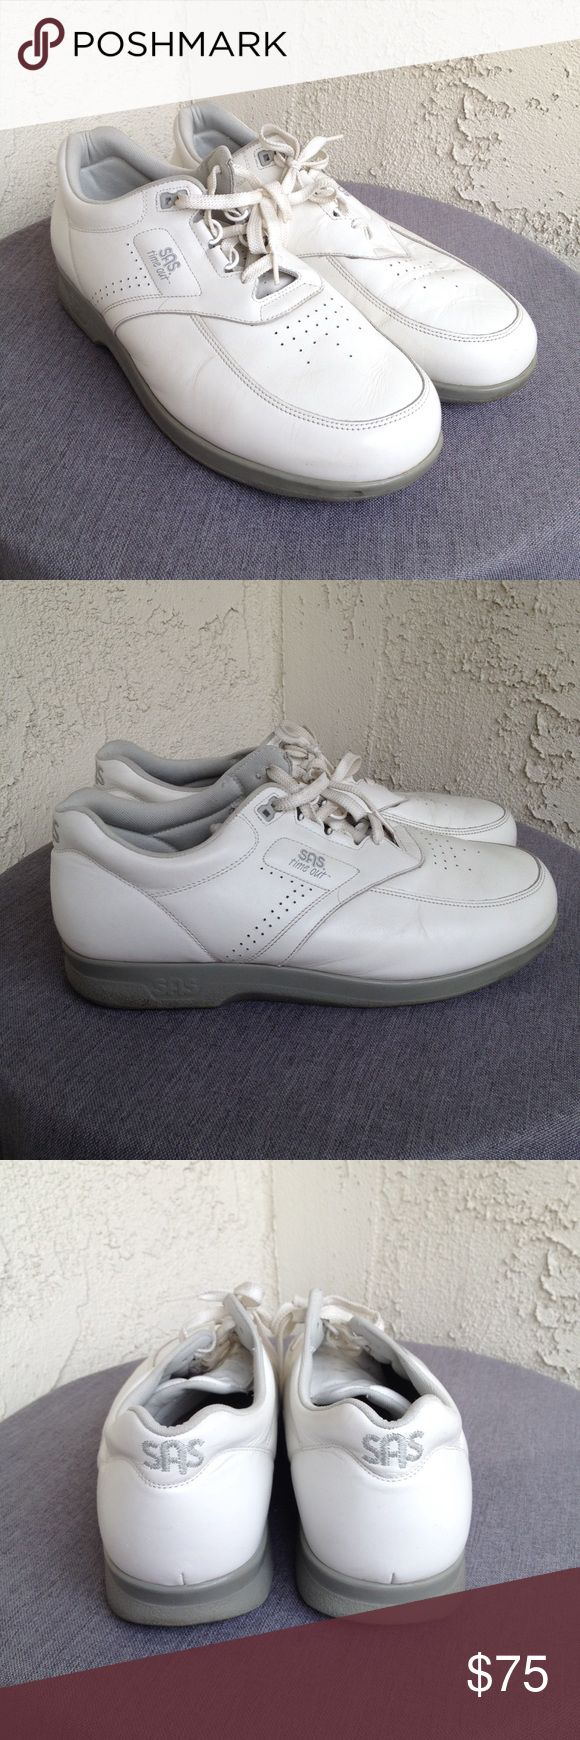 SAS Men's Time Out White Leather Sneakers Shoes 13 SAS Mens Shoes Time Out White Leather Tripad Comfort Lace Up Sneakers   Type: Shoes Style: Tripad Comfort / Lace Up Sneakers Style Name: Time Out  Brand: SAS / San Antonio Shoemakers  Size: 13 W / 13 Wide Material: Leather Upper / Balance Man Made  Color: White  Condition: Great, Preowned Condition Country of Manufacturer: USA  Stock Number: 0012 San Antonio Shoemakers Shoes Sneakers